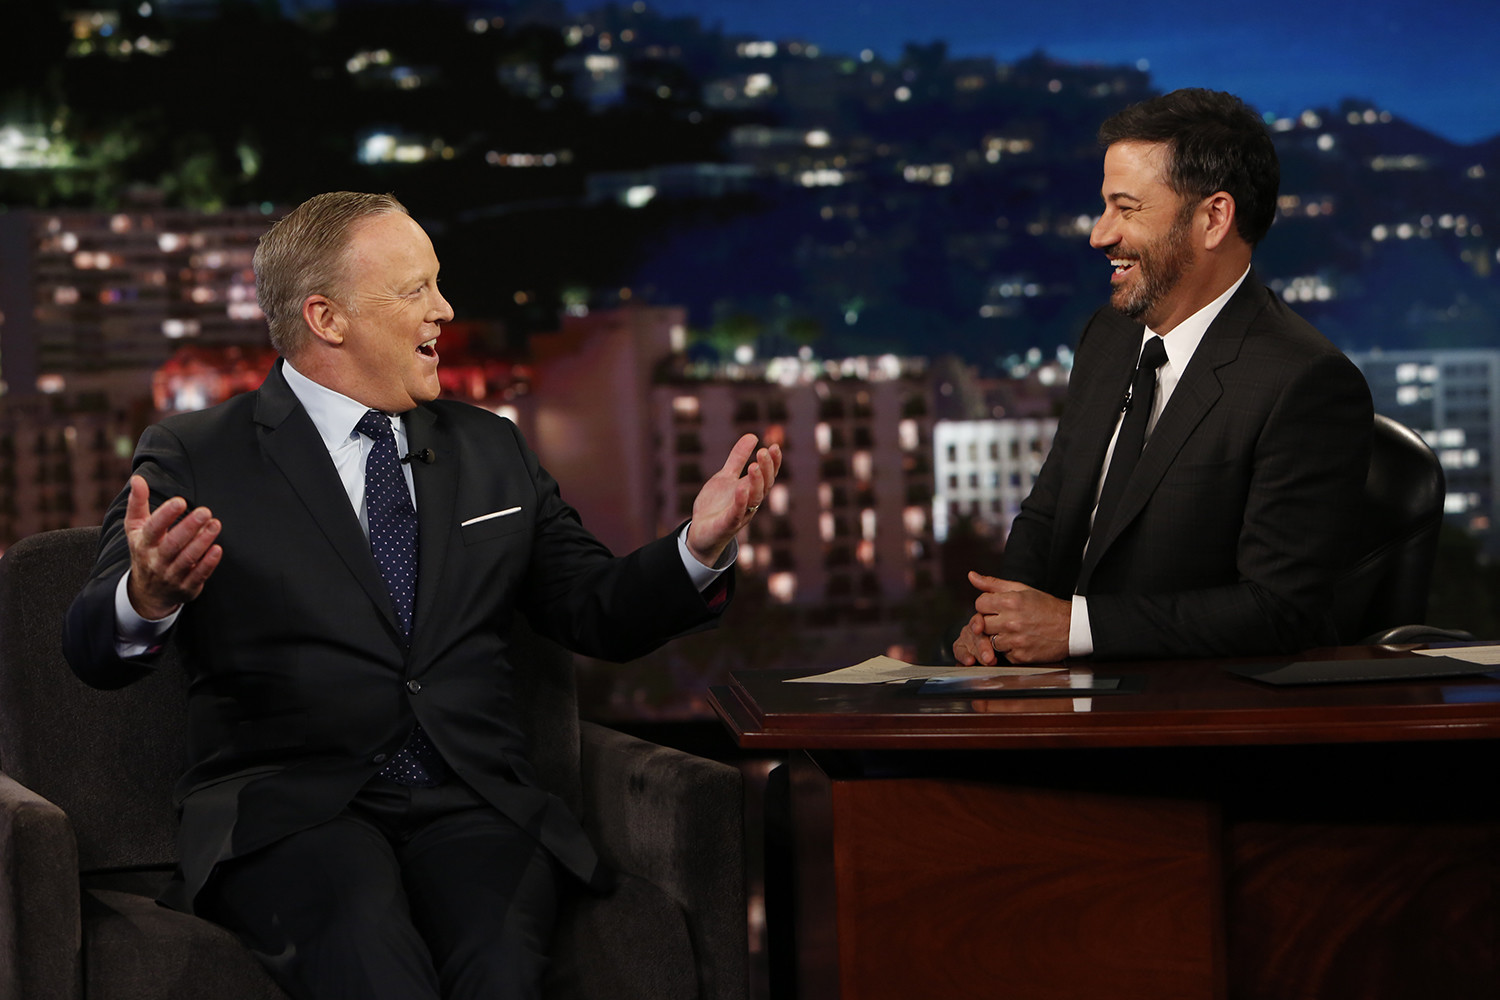 sean spicer pressed gently as jimmy kimmel live guest chicago tribune